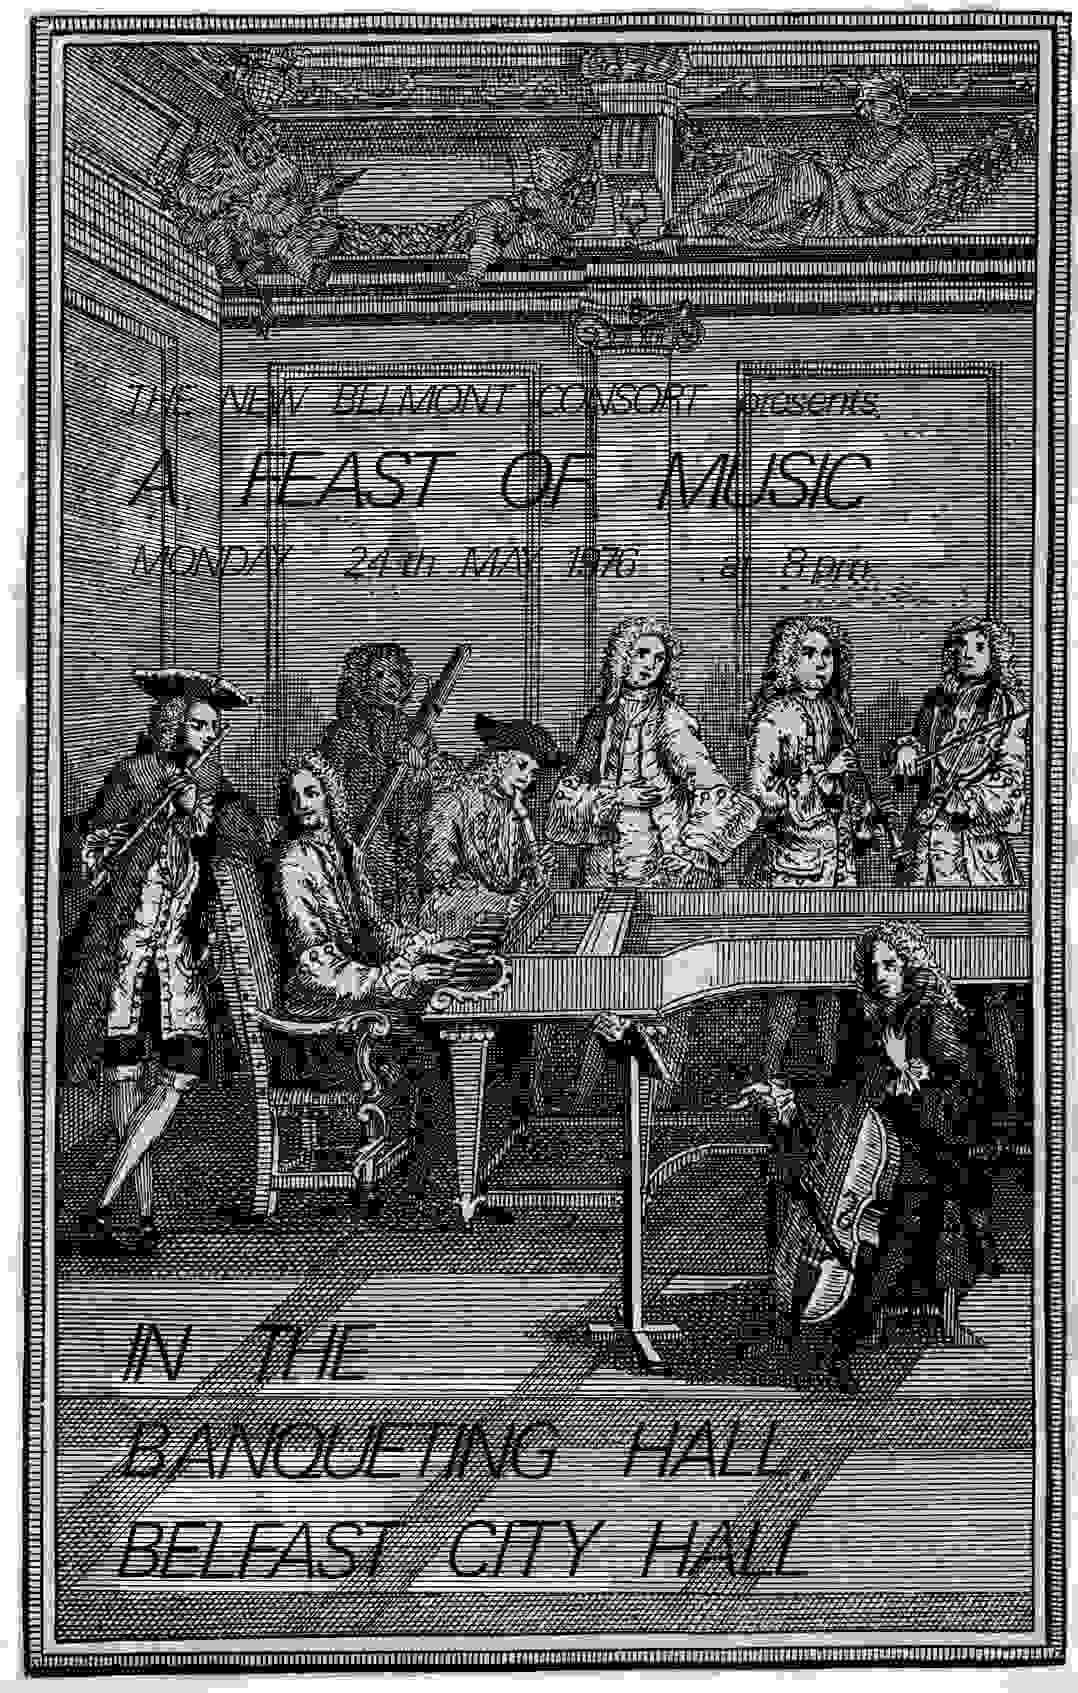 New Belmont Consort Feast of Music